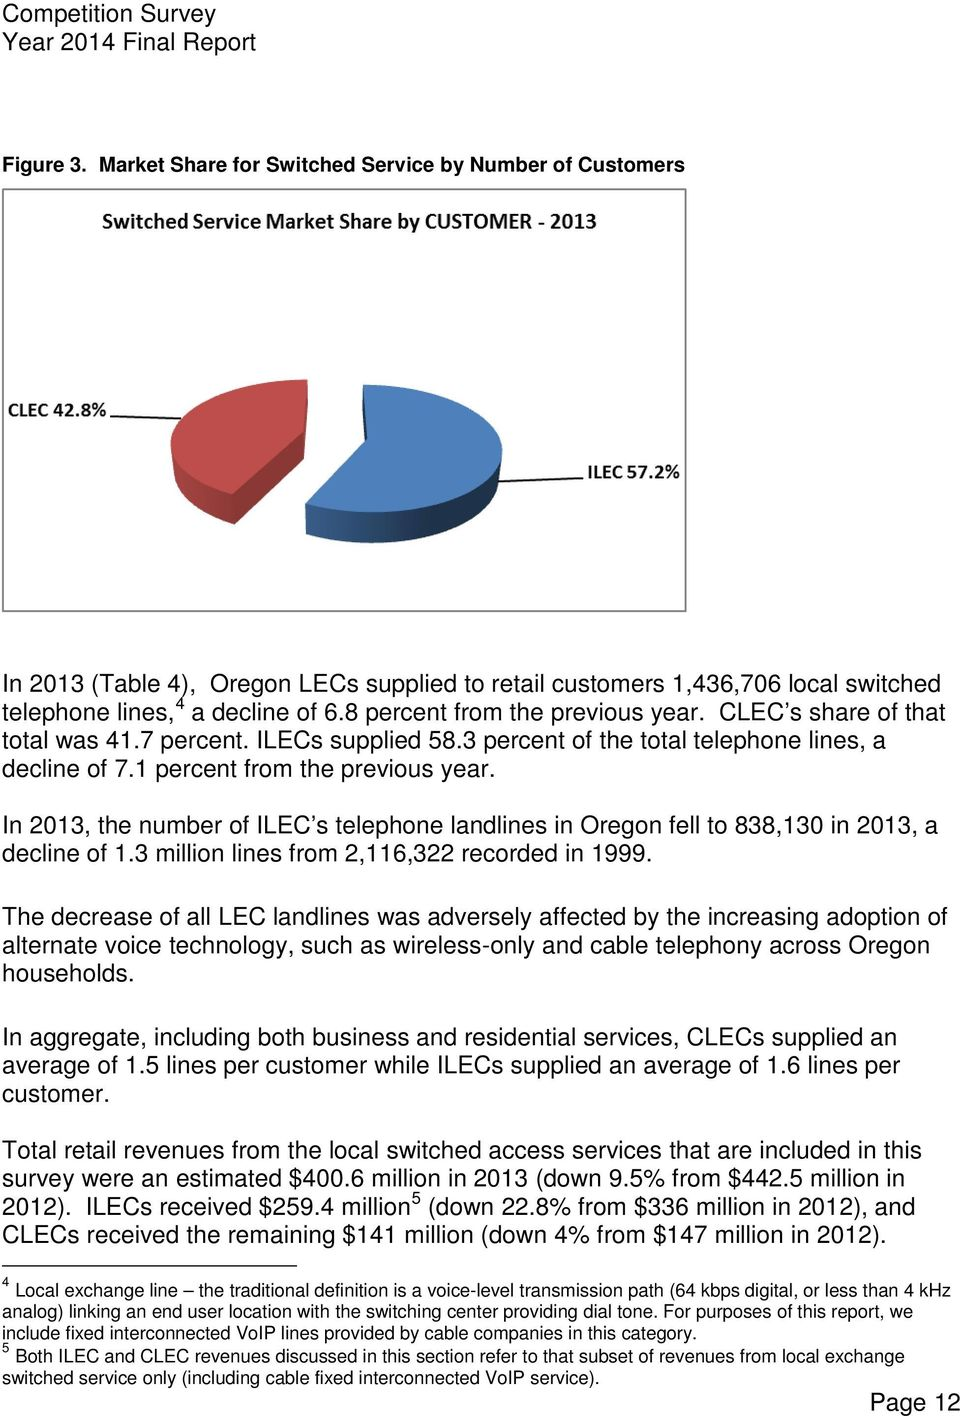 In 2013, the number of ILEC s telephone landlines in Oregon fell to 838,130 in 2013, a decline of 1.3 million lines from 2,116,322 recorded in 1999.